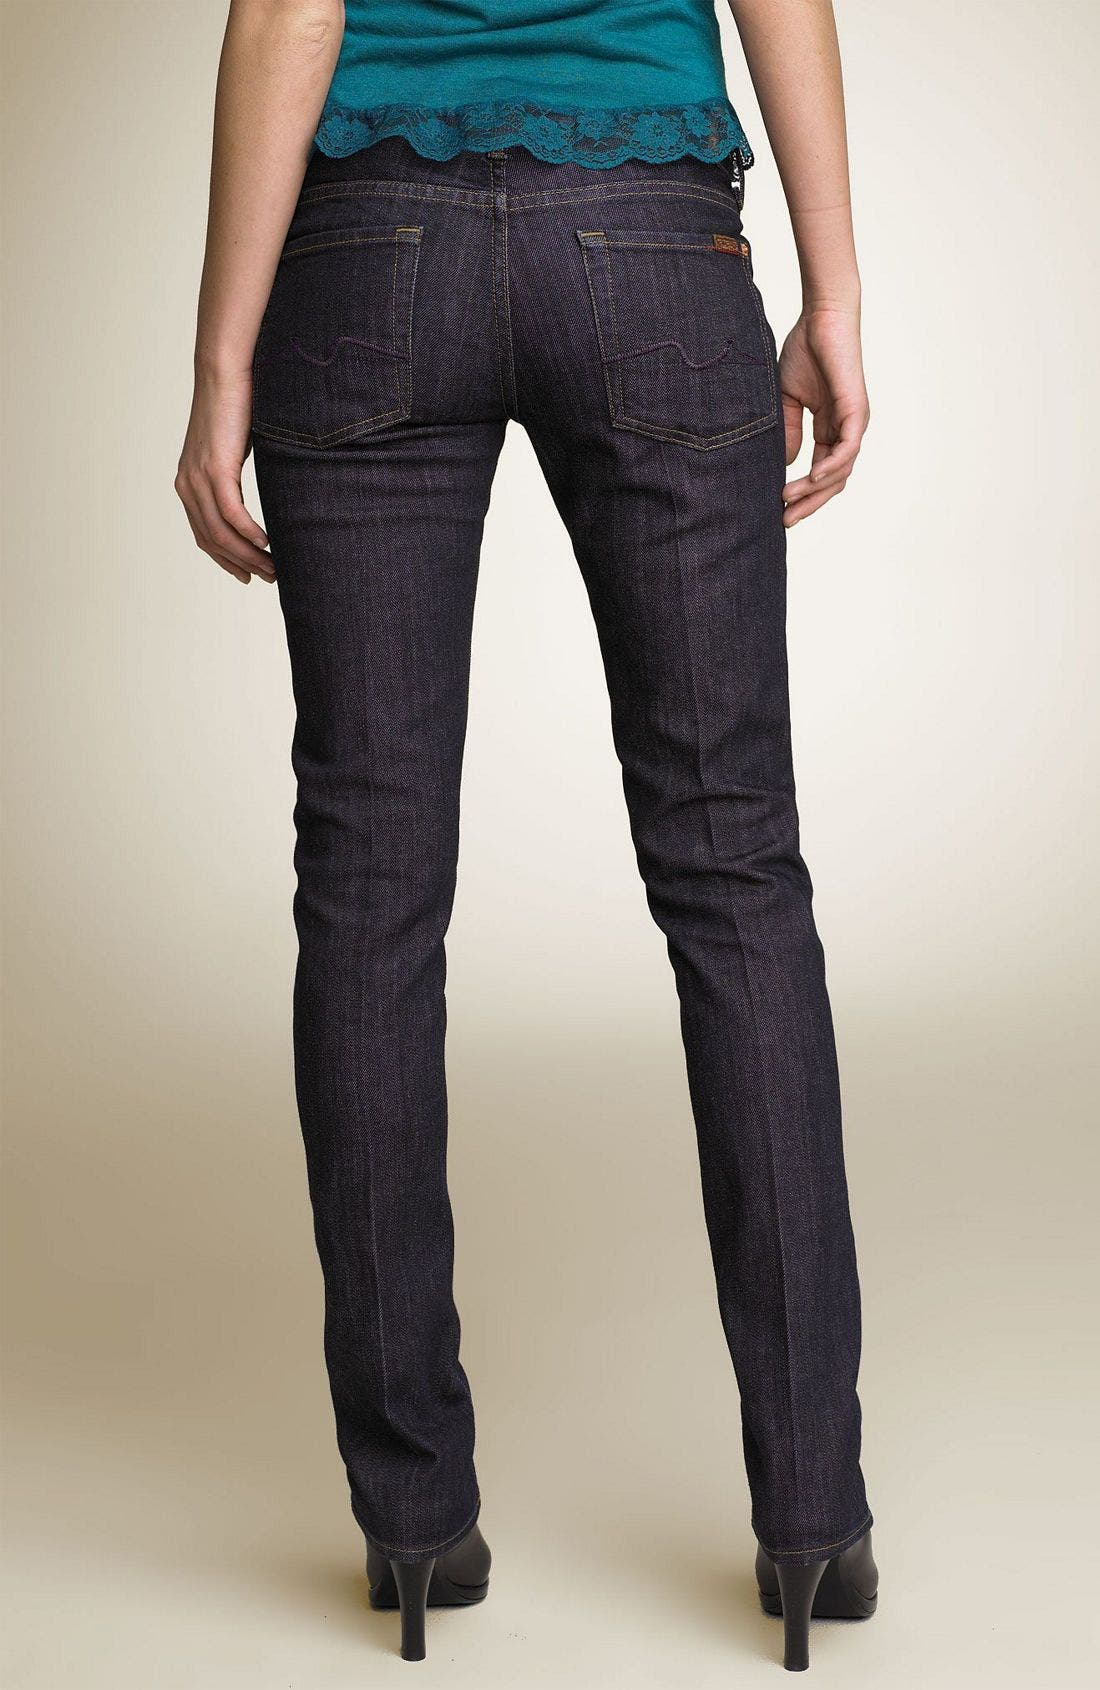 Main Image - 7 For All Mankind® 'Roxanne' Skinny Stretch Jeans (Mercer Wash)